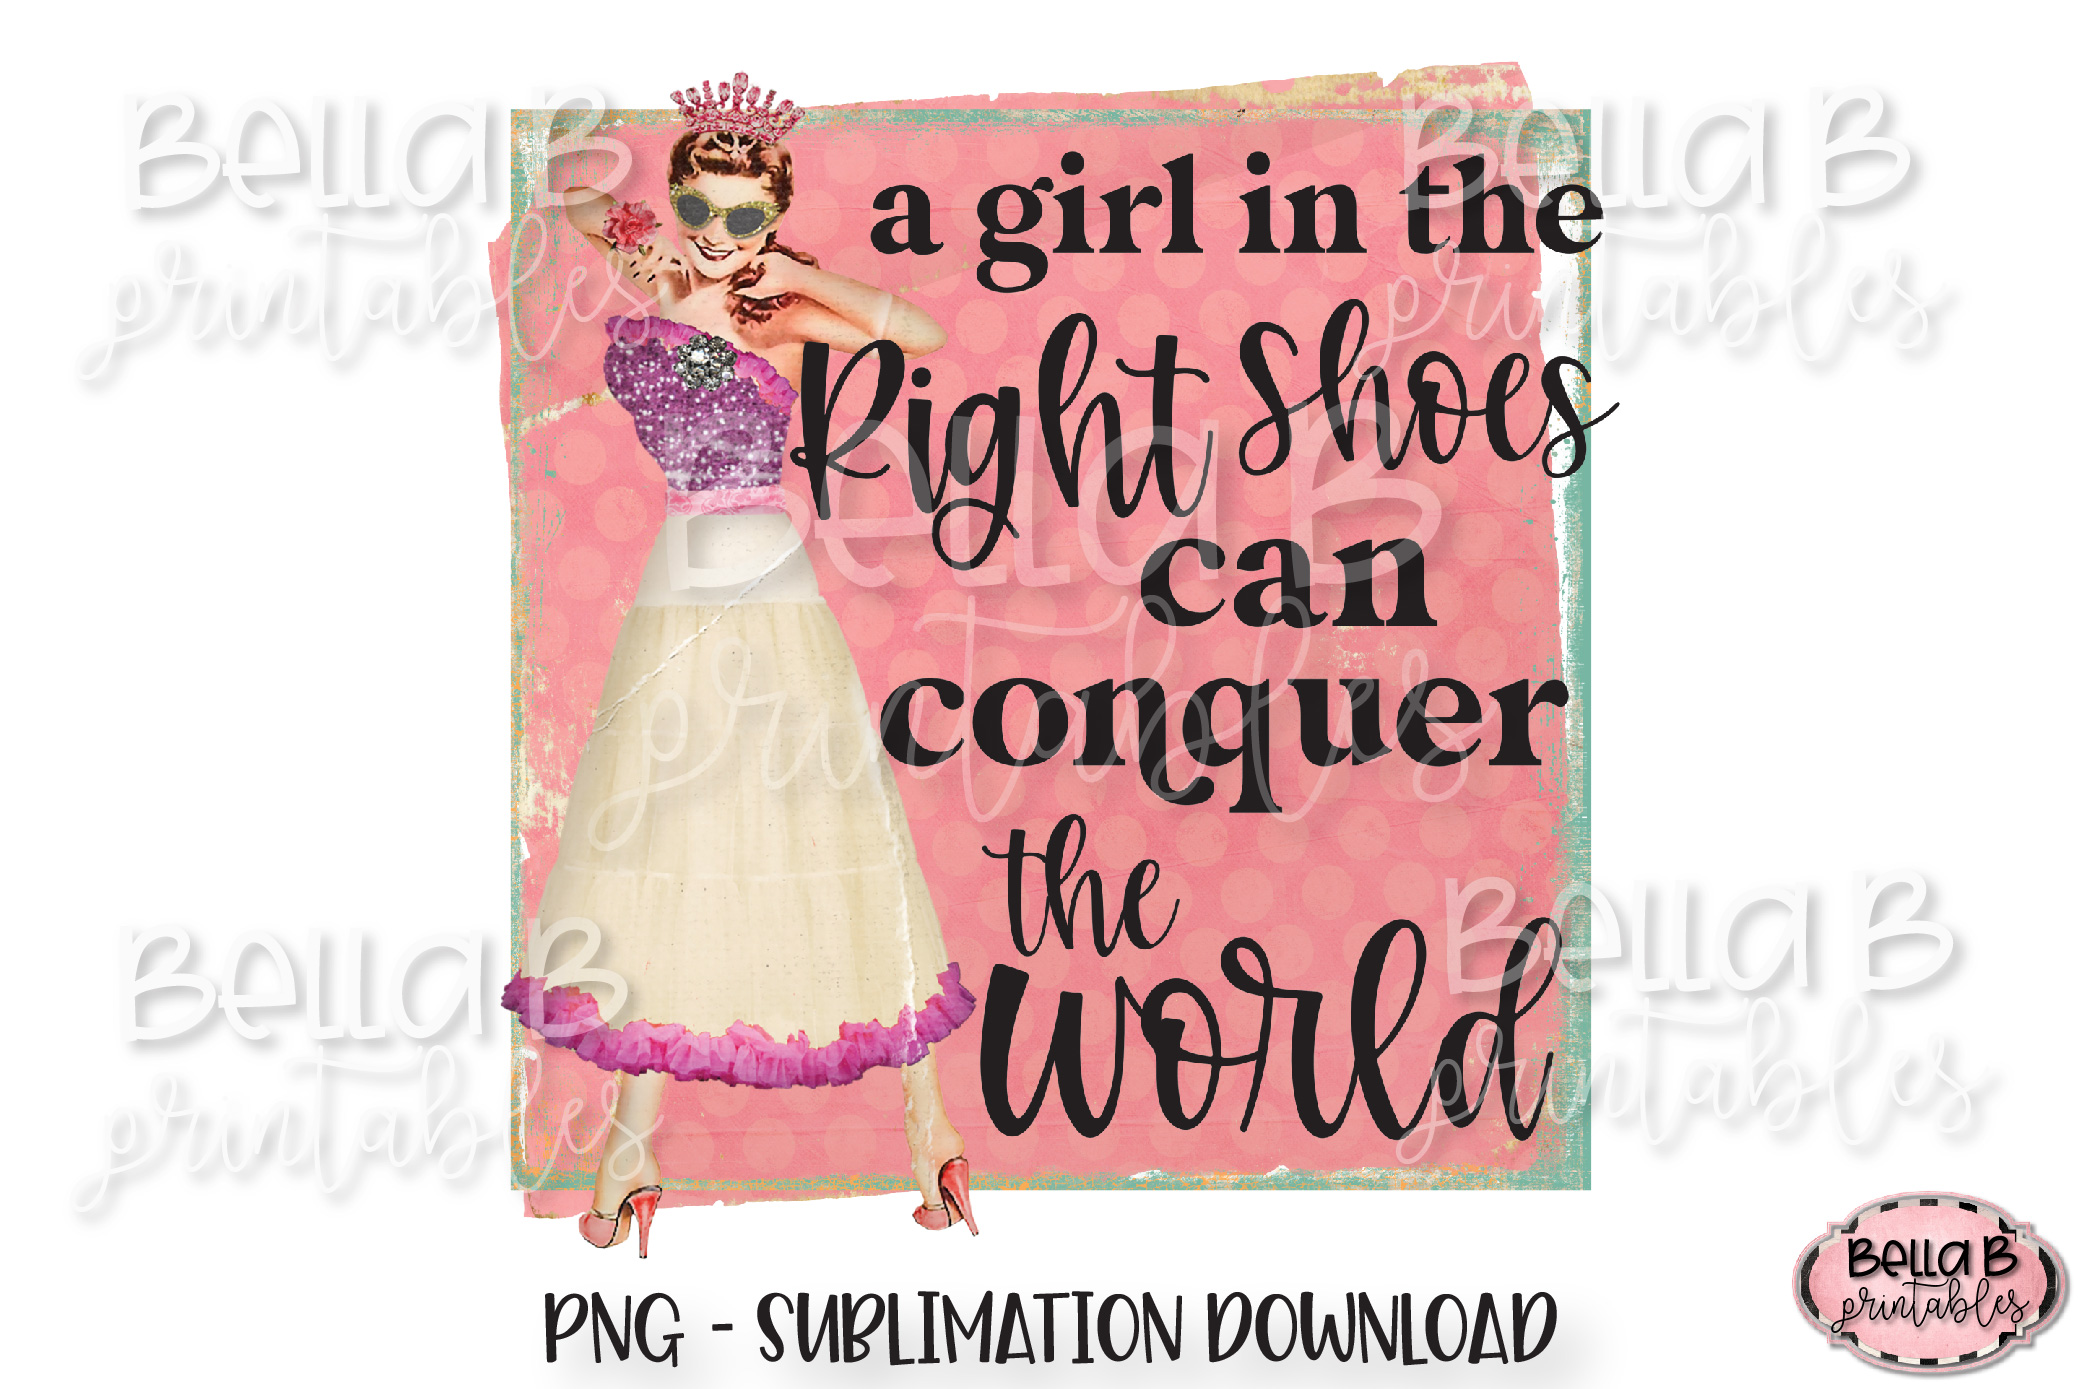 Retro Girl Sublimation Design, A Girl In The Right Shoes example image 1